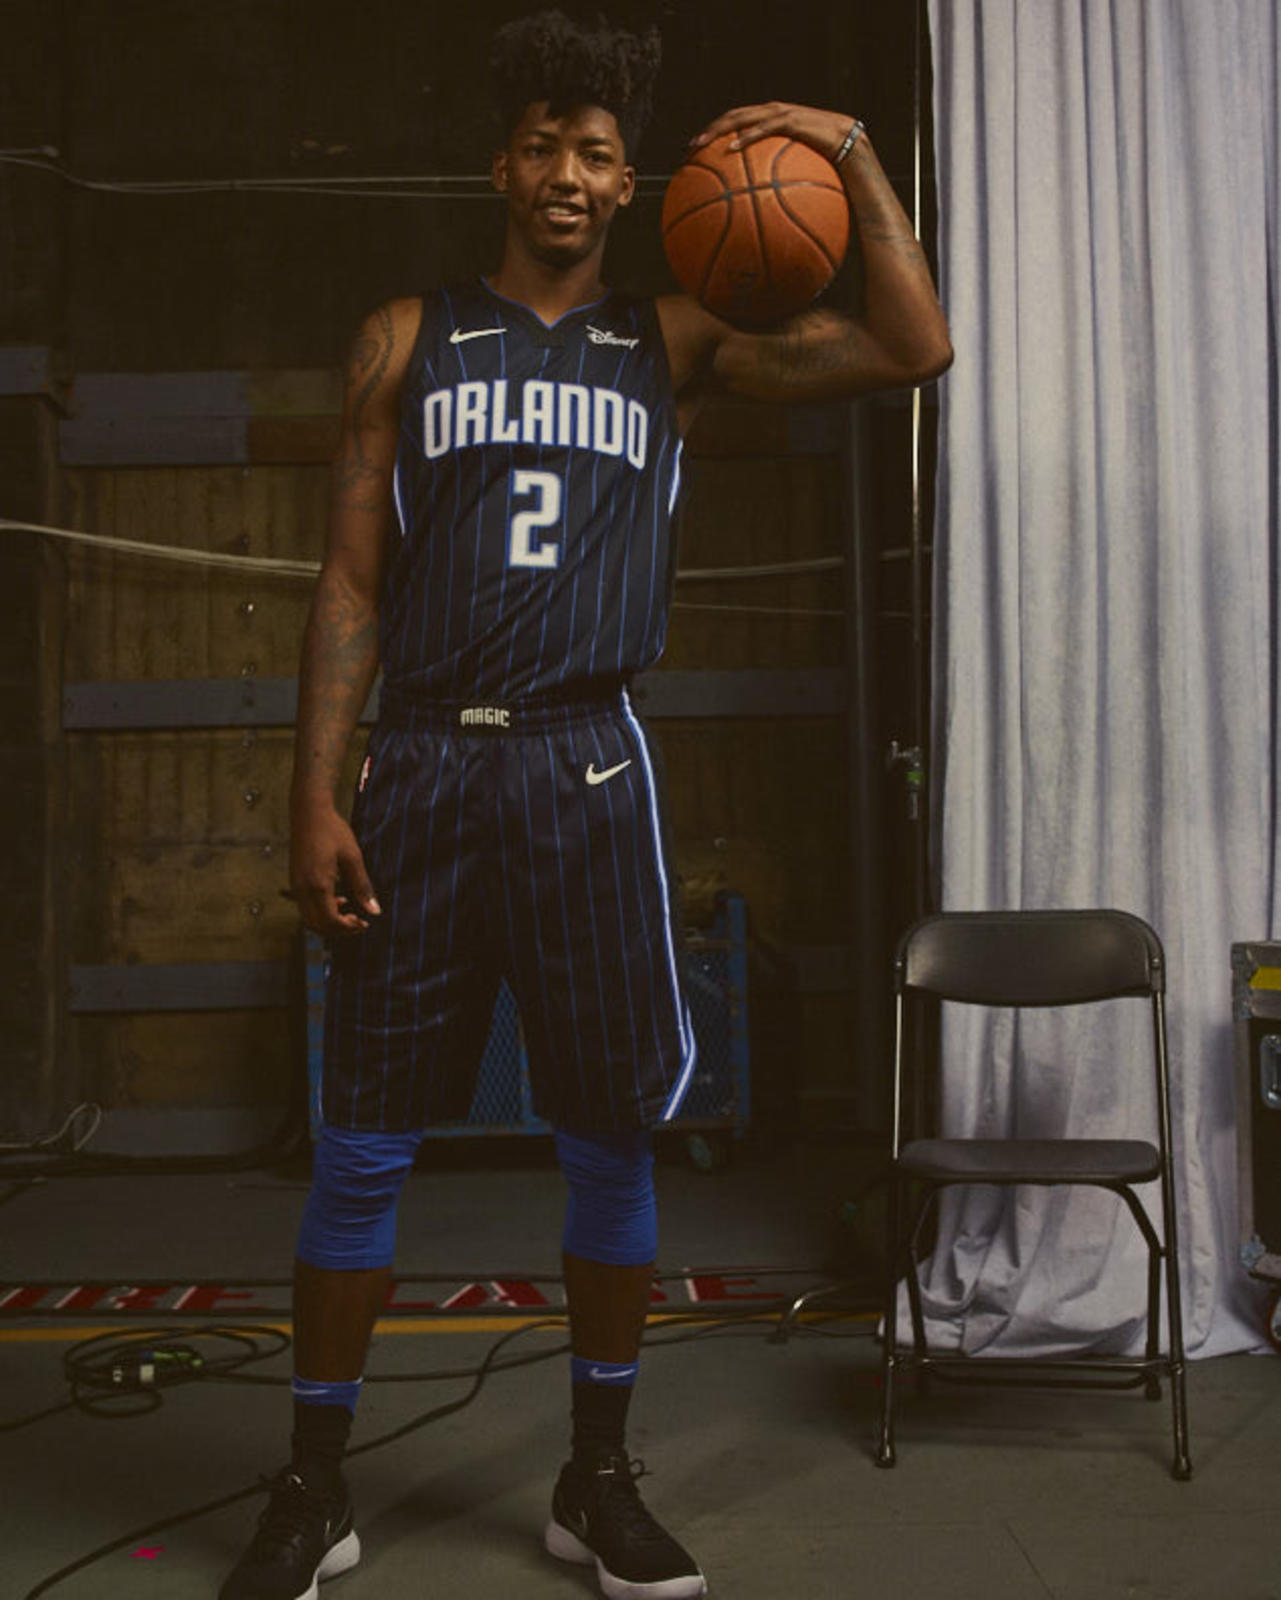 Nike NBA Statement Edition uniform Orlando